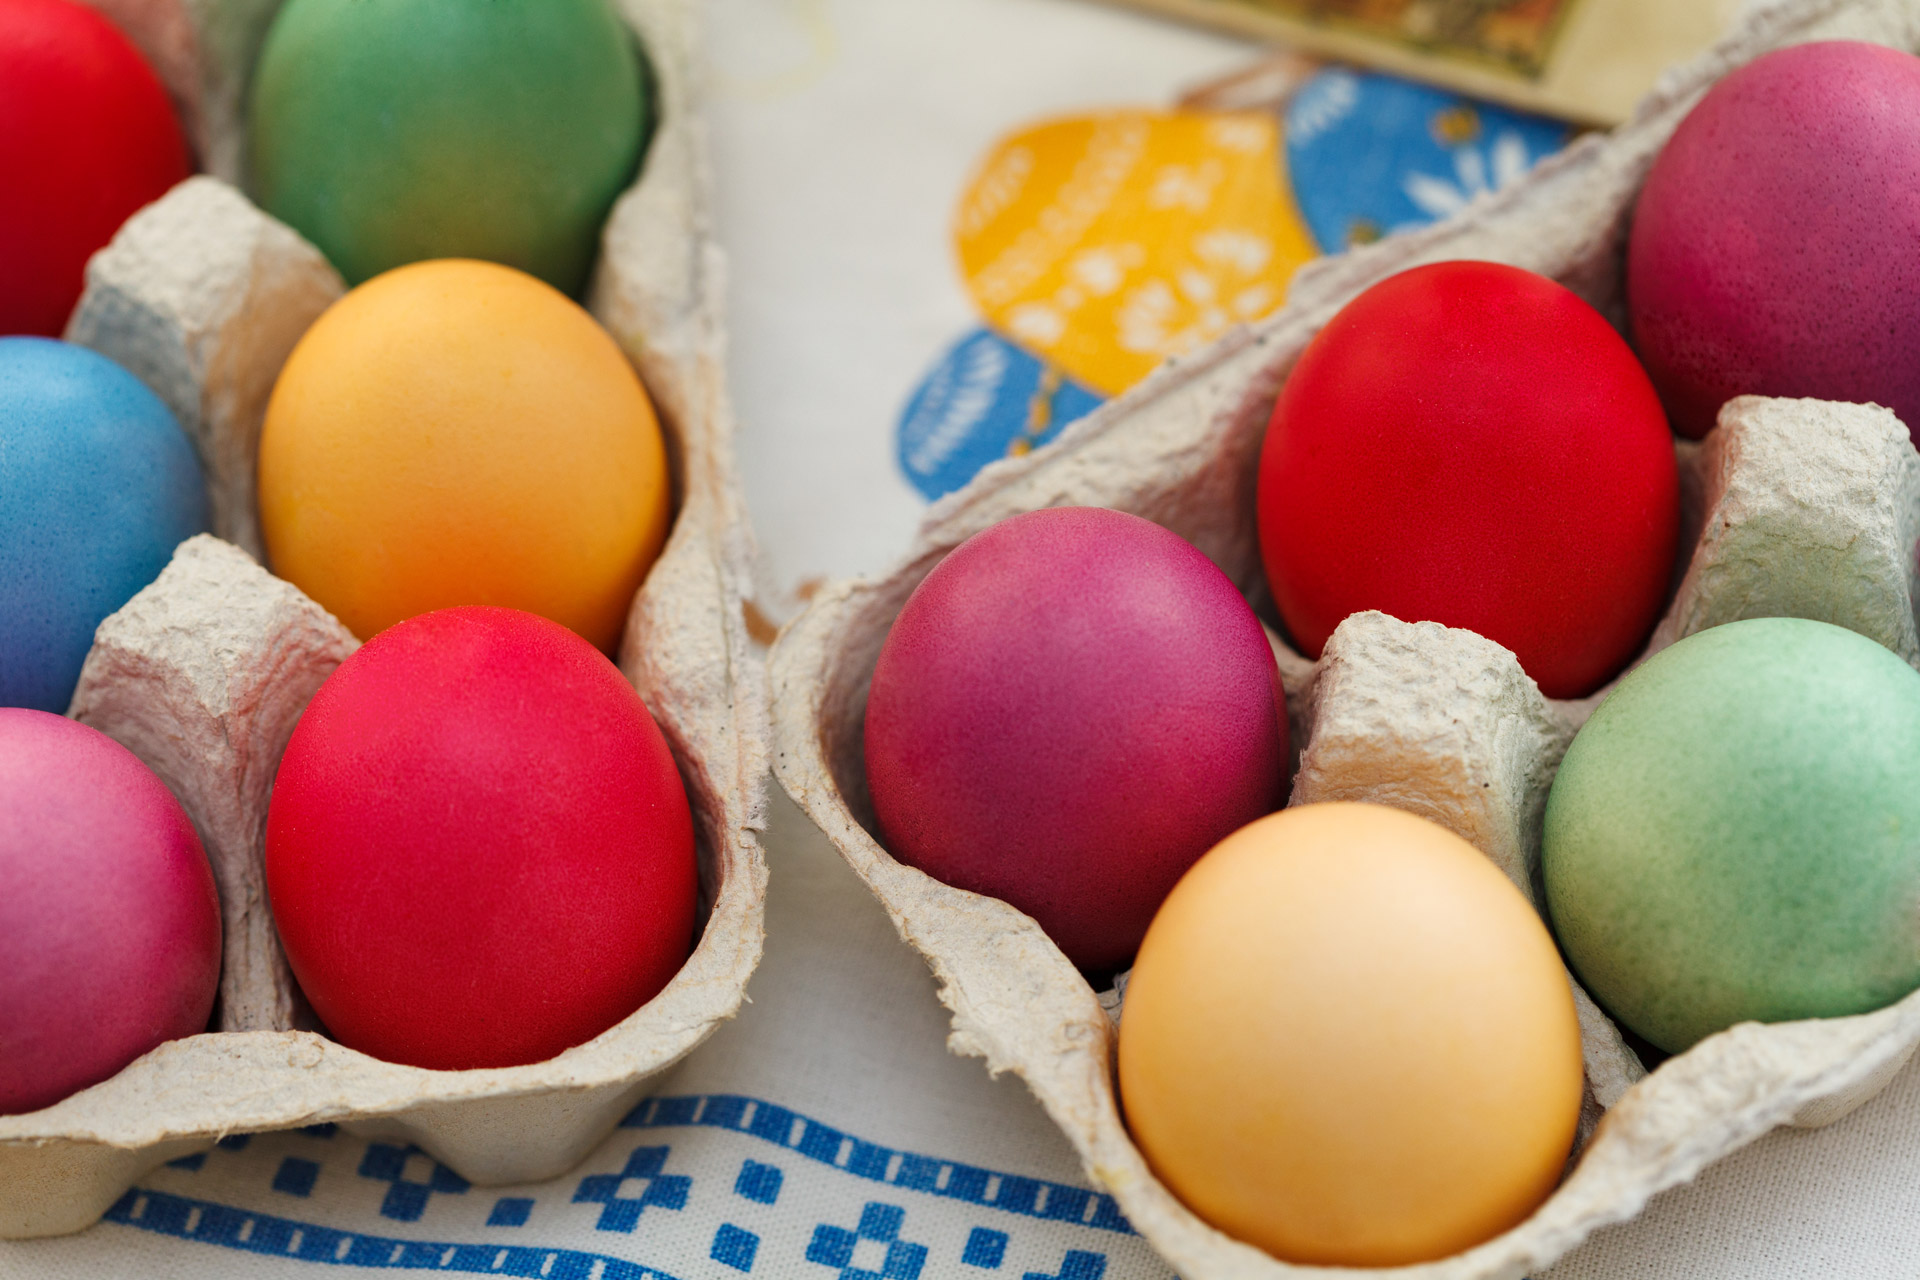 Egg Decorating Calendar Image.jpg